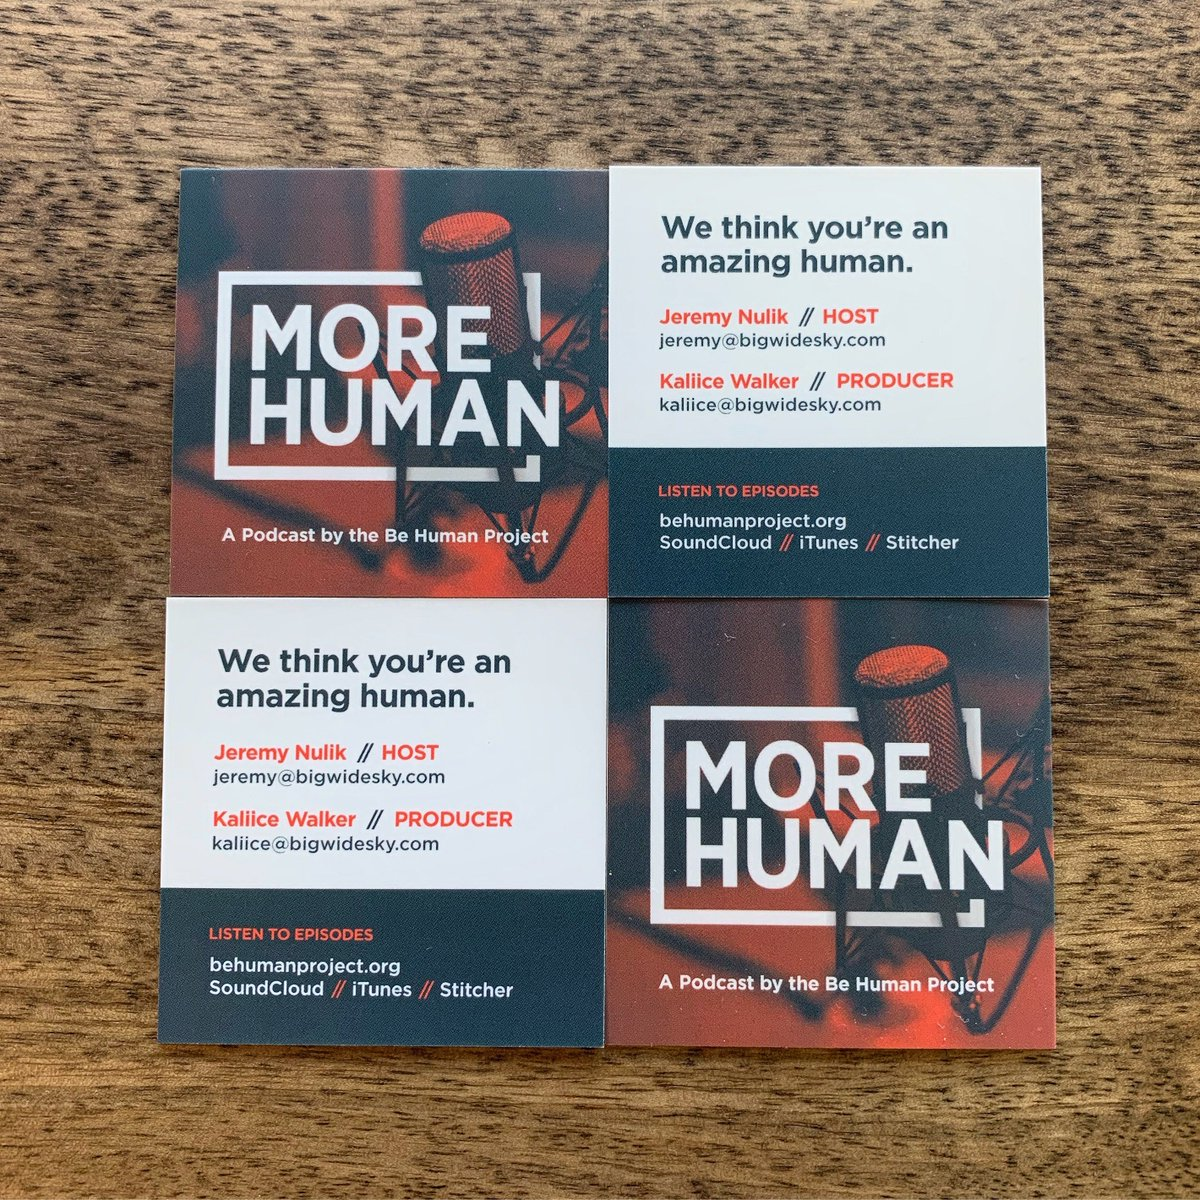 Be Human Project (@BeHumanProject) | Twitter